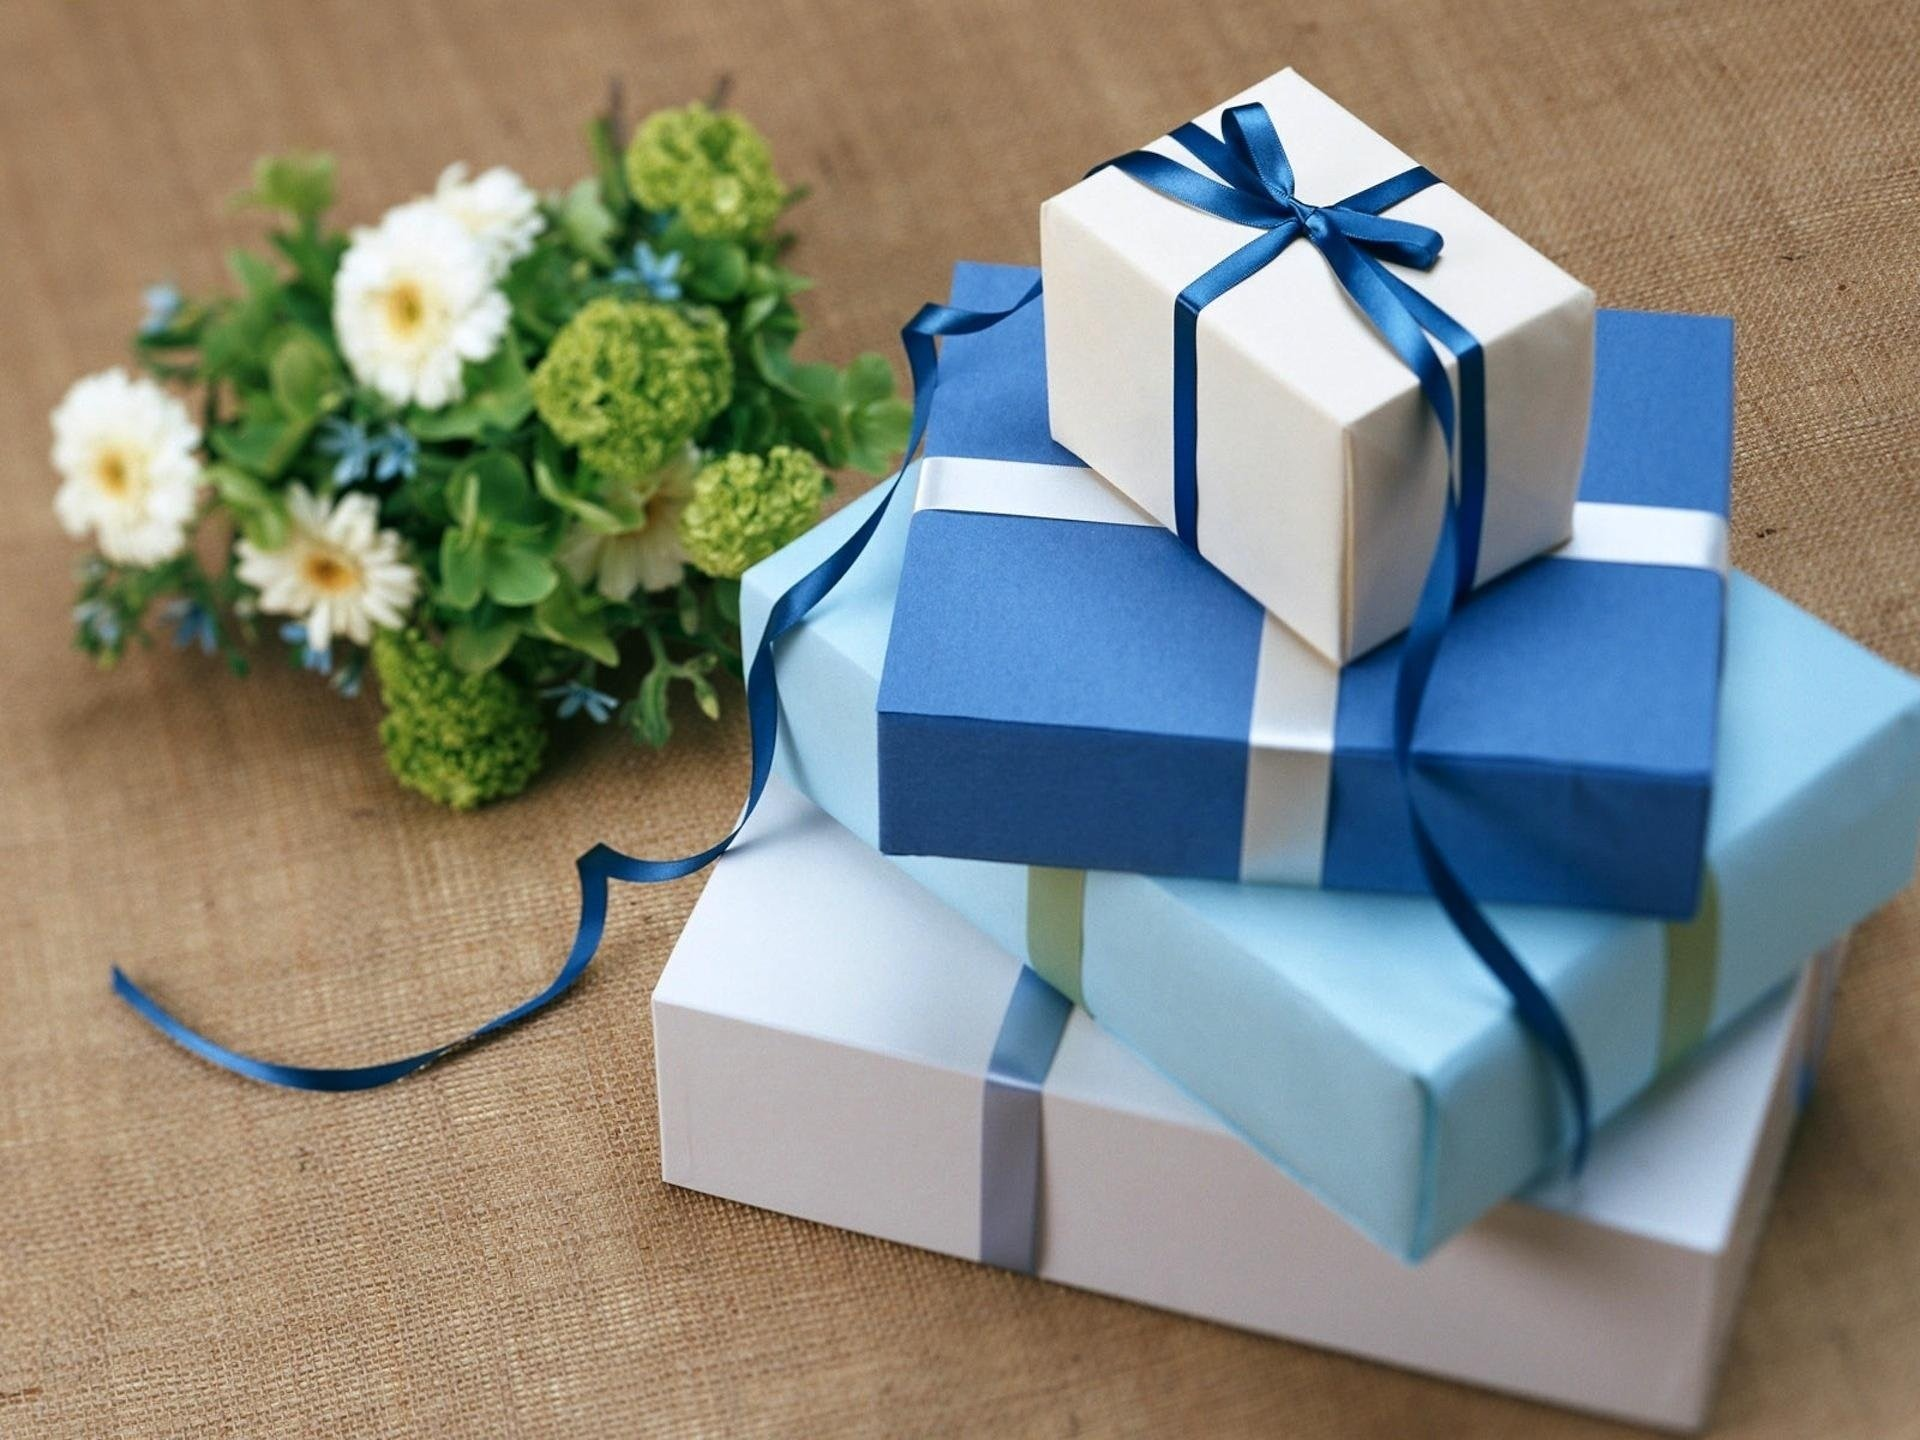 Why are gifts important